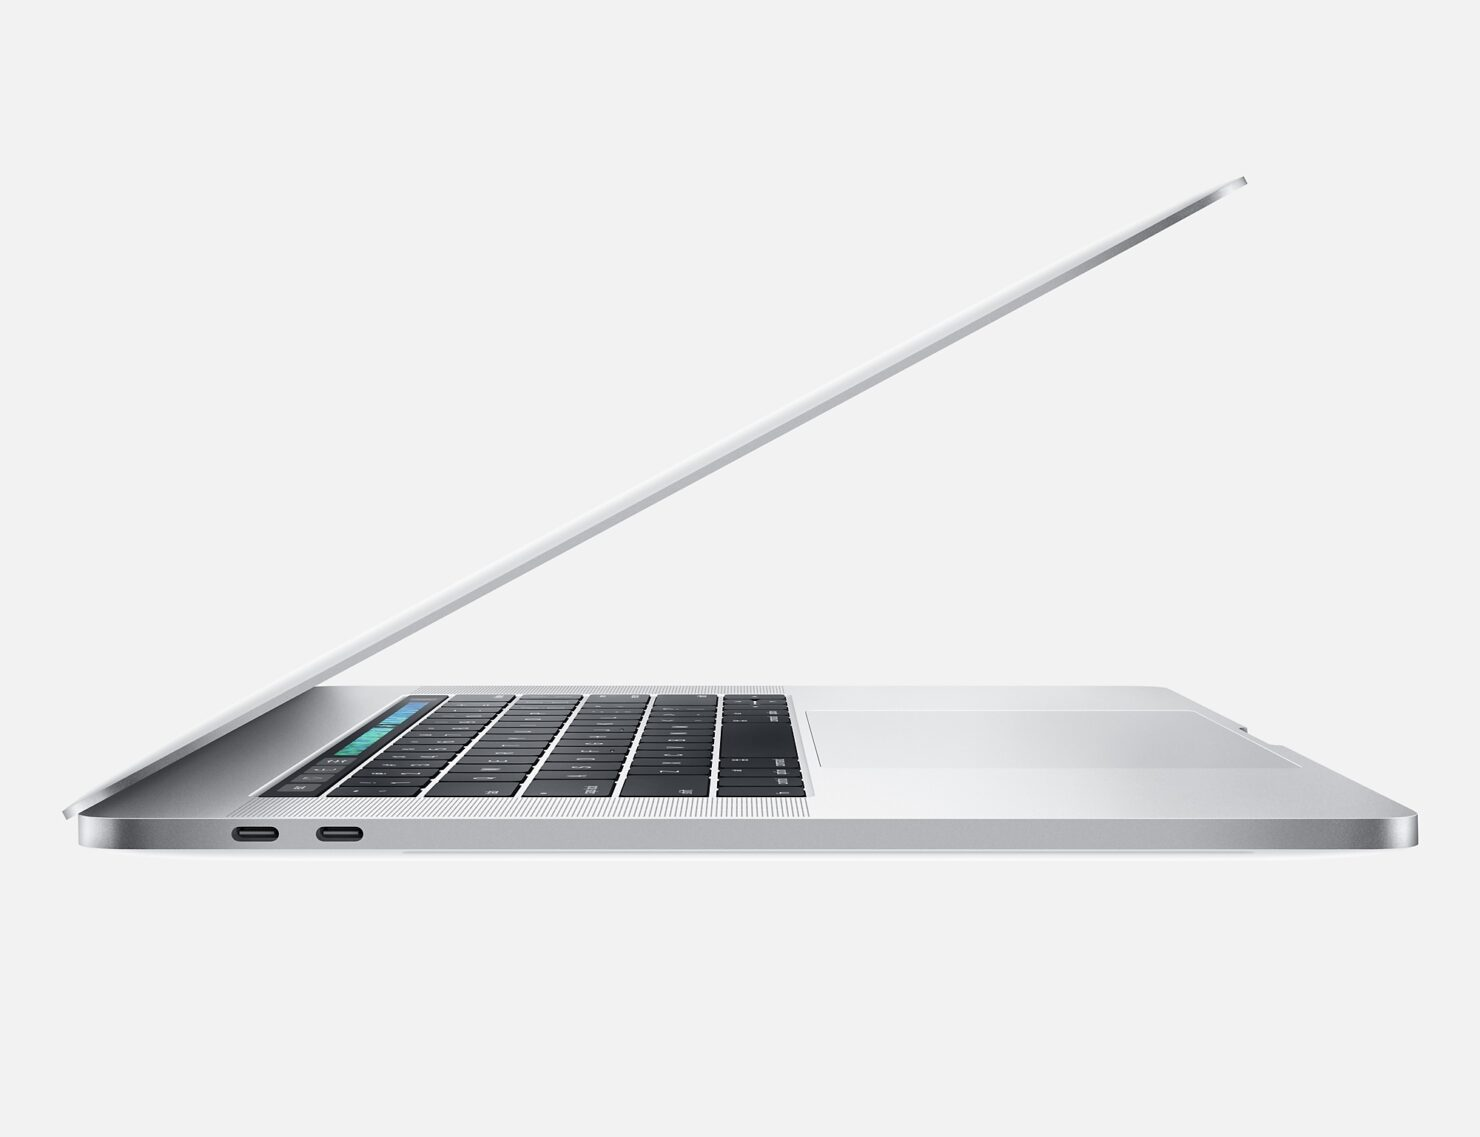 Apple MacBook Pro latest chips from Intel